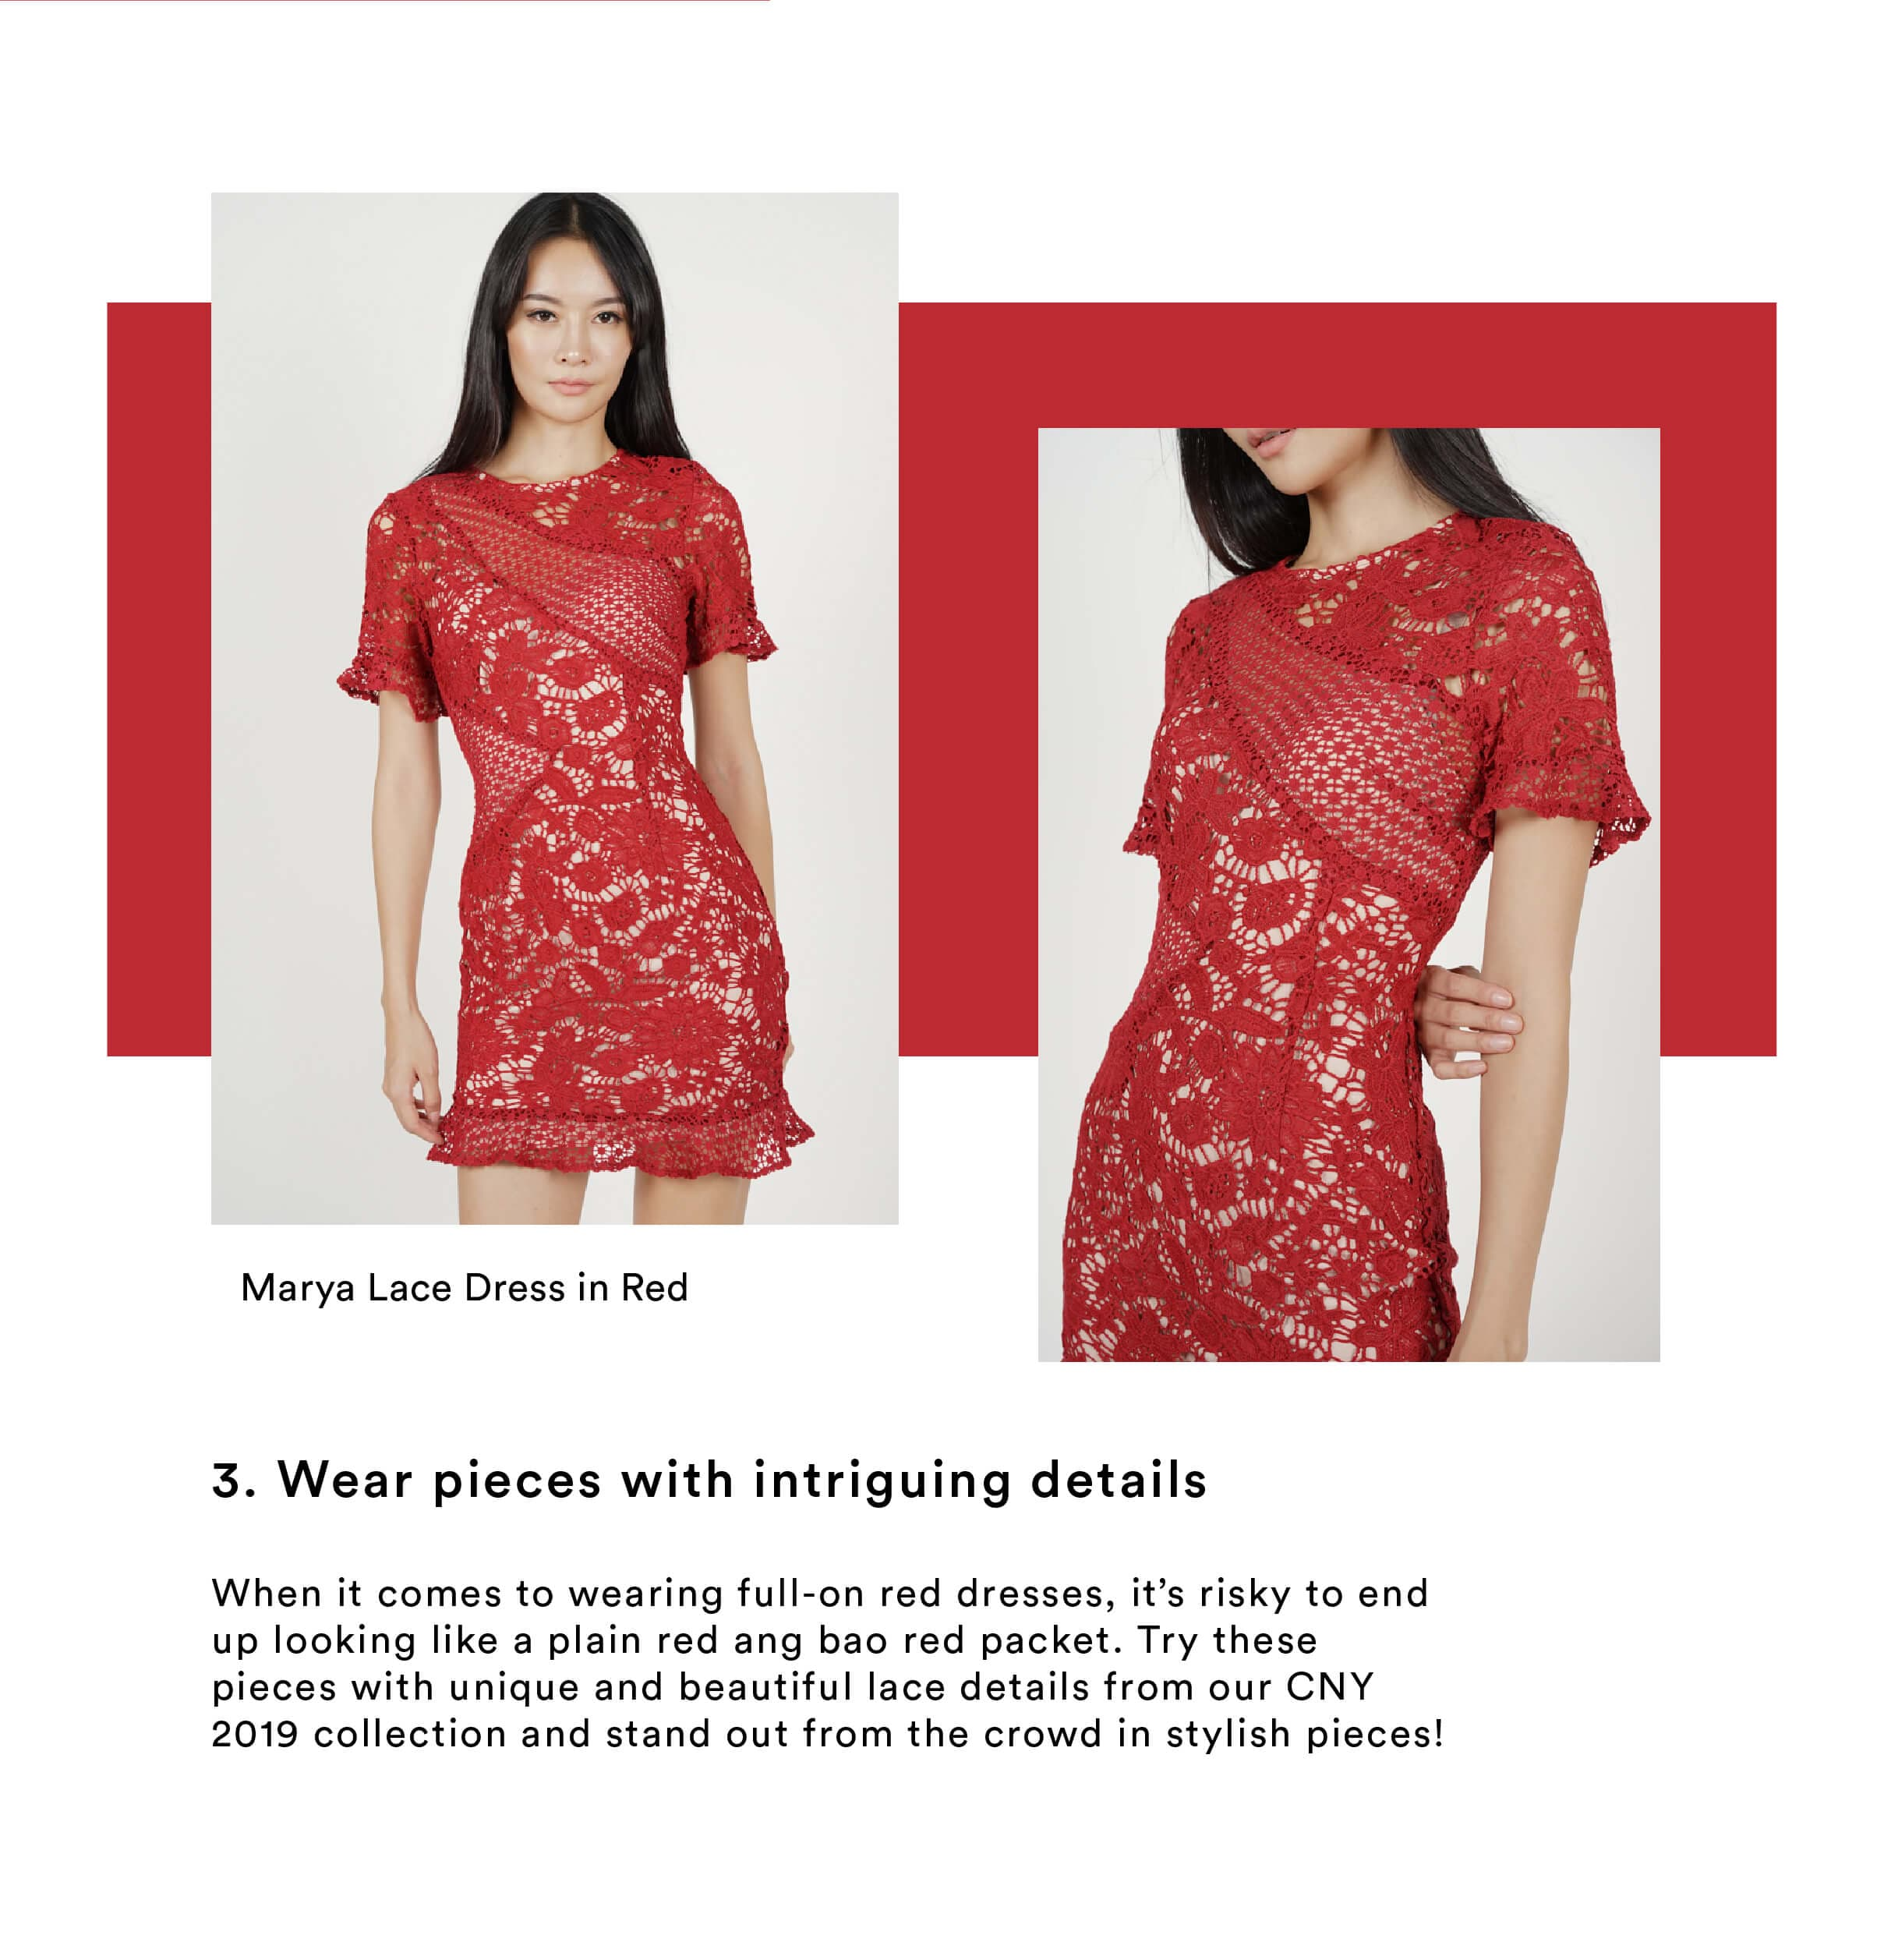 CNY Wear pieces with intriguing details